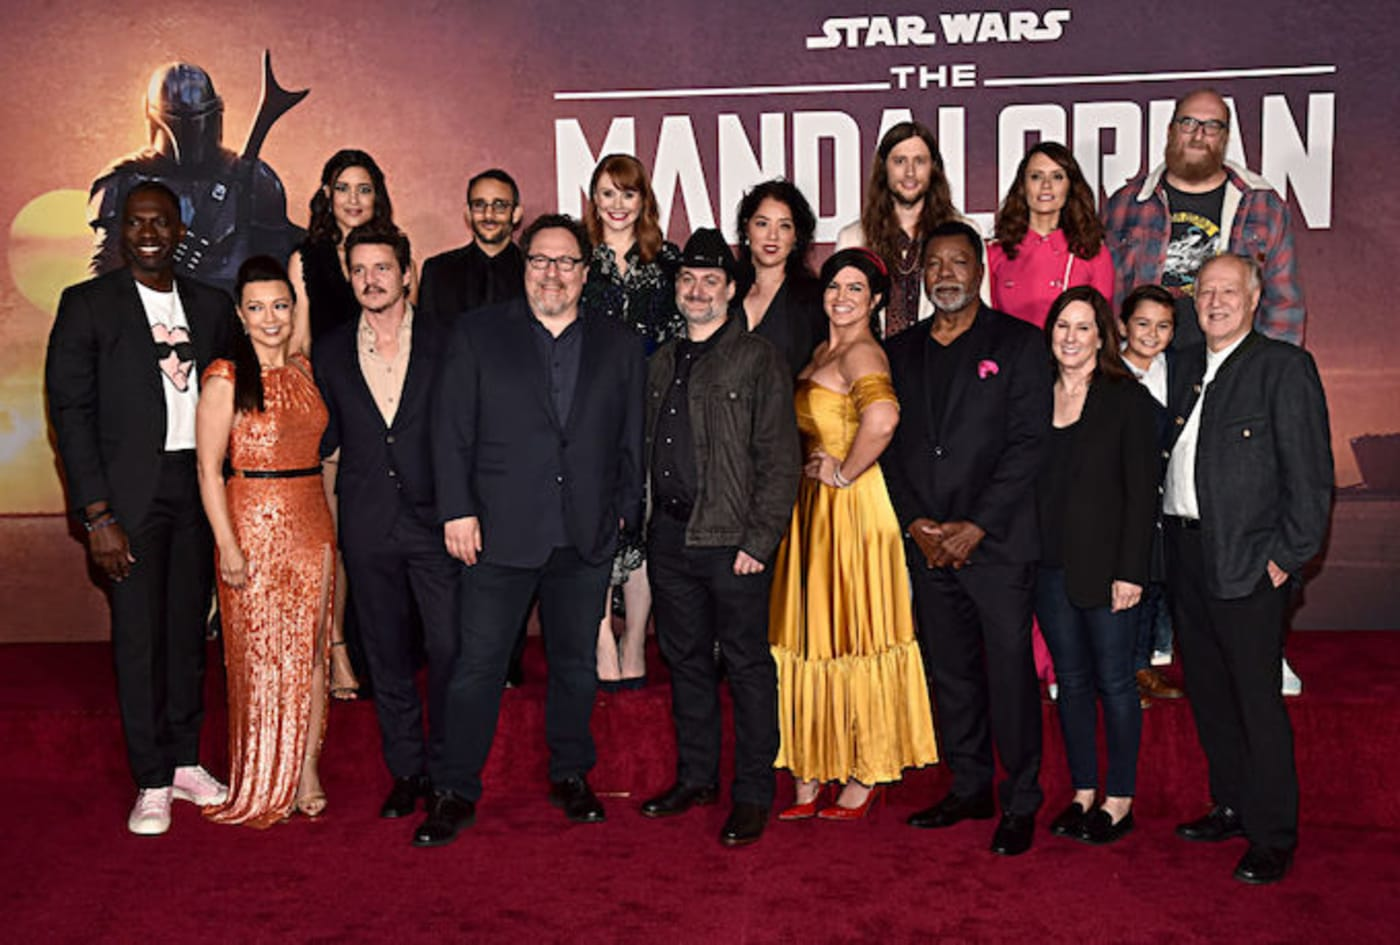 This is a picture of the Mandalorian.